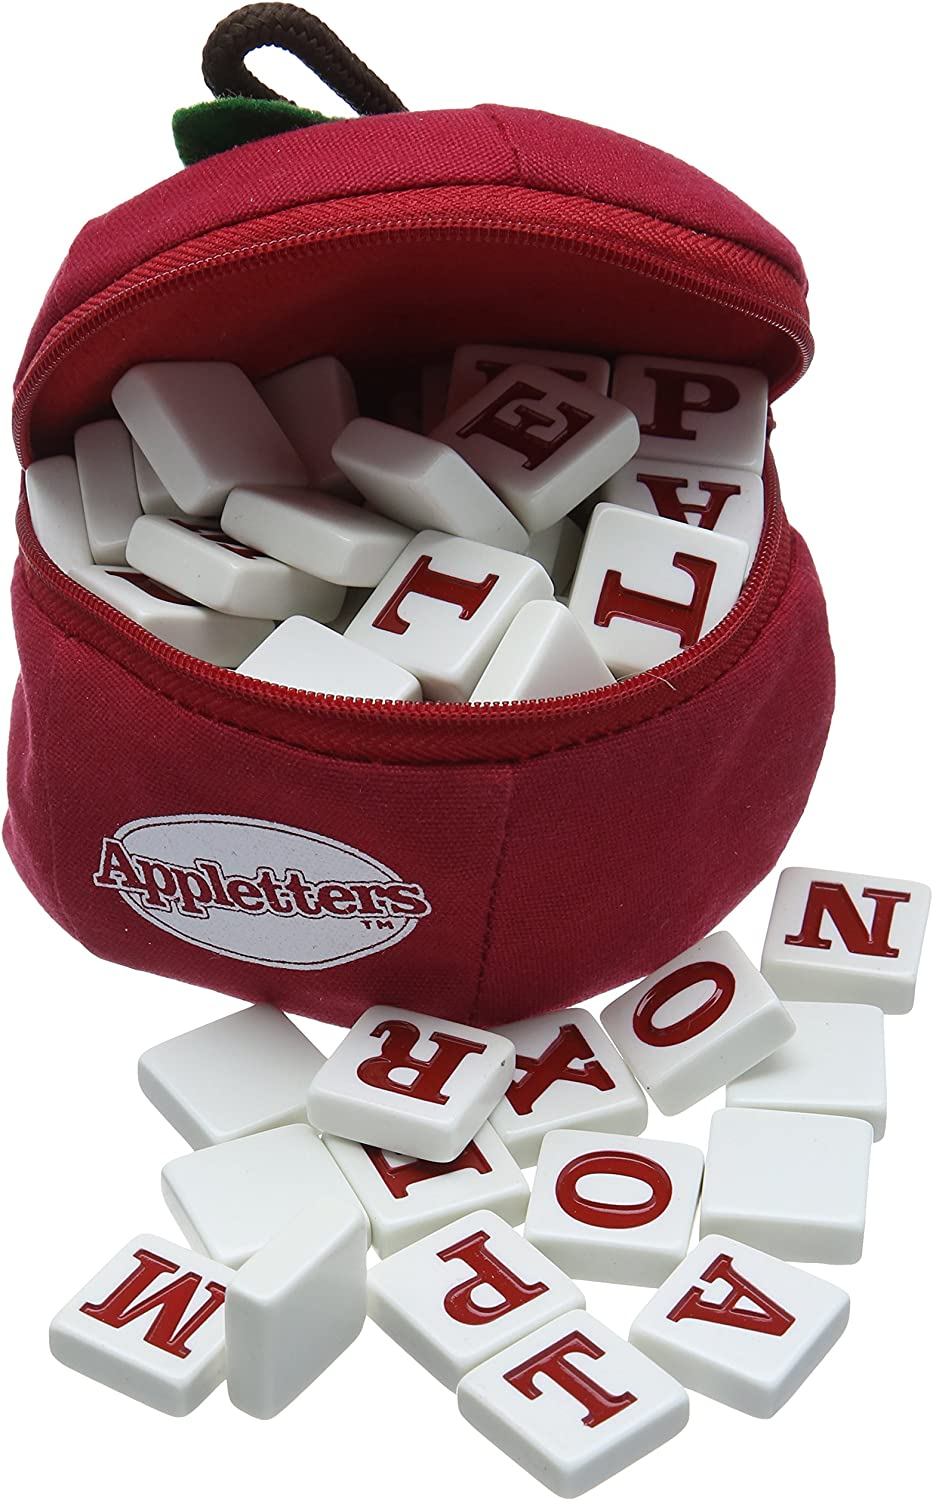 Appletters: Spelling and Word Tile Game By Bananagrams